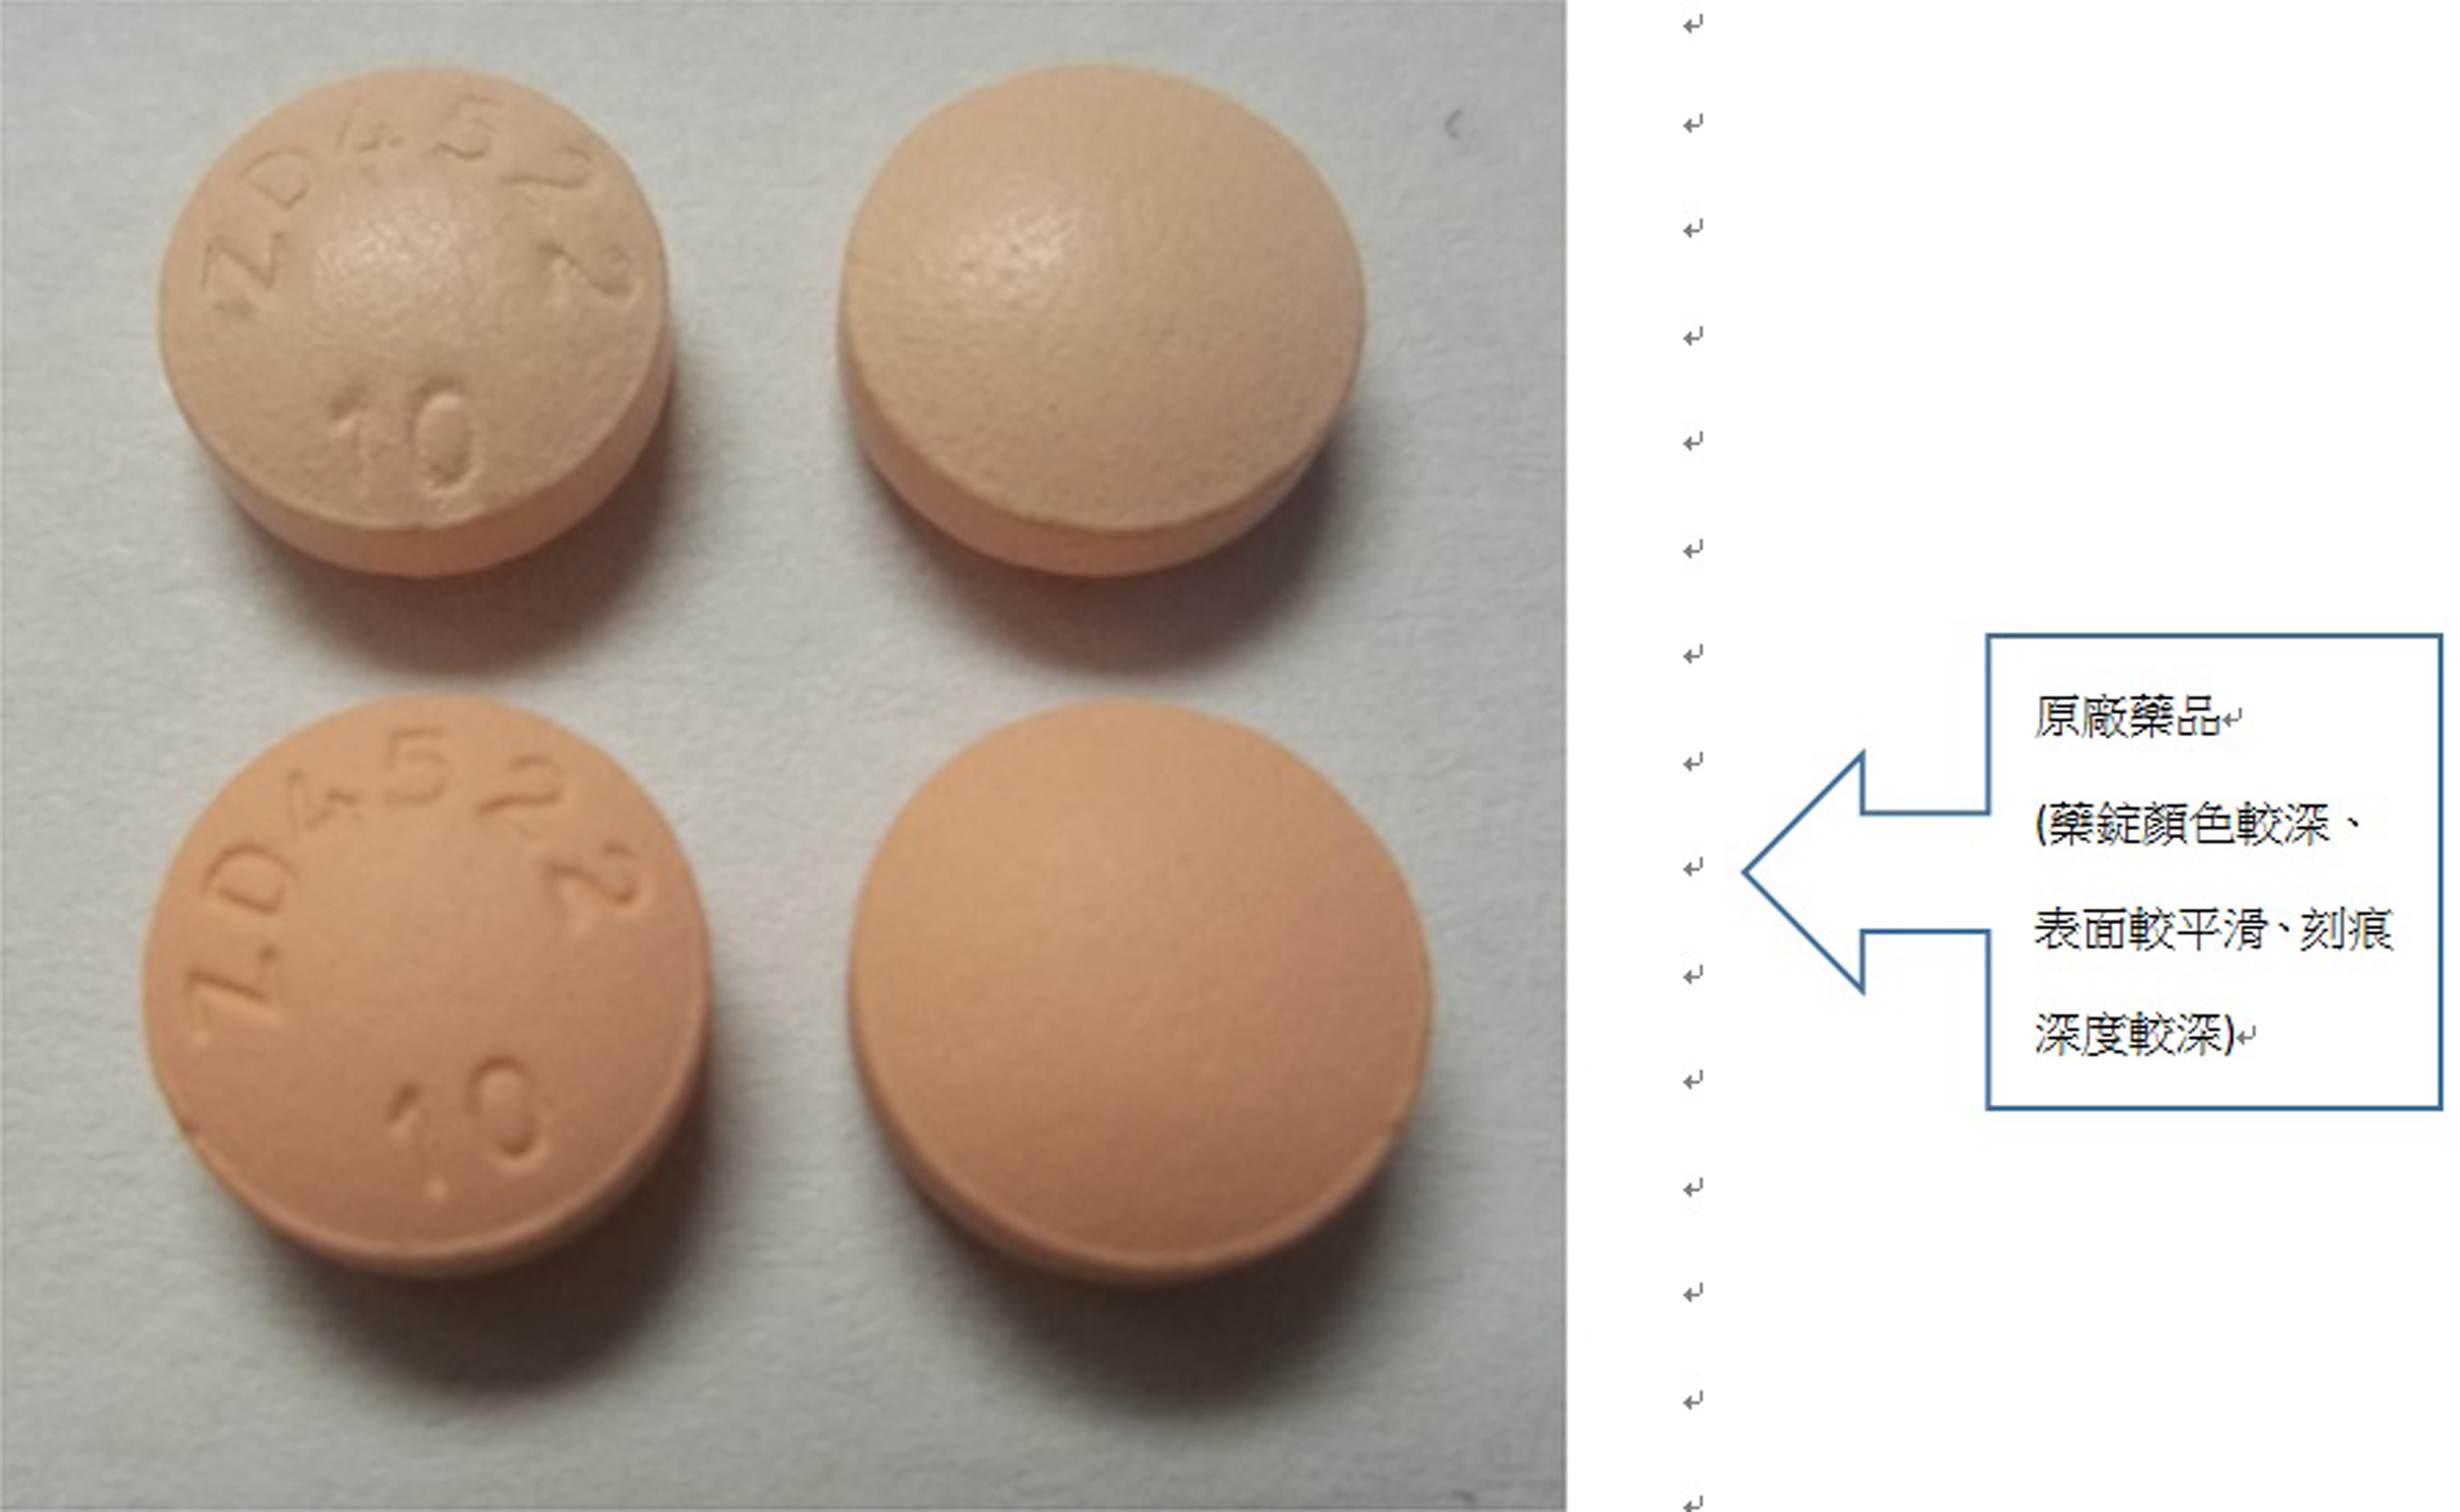 A comparison between the real and fake Crestor pills, the real drug has a darker color, is smoother and deep imprints.